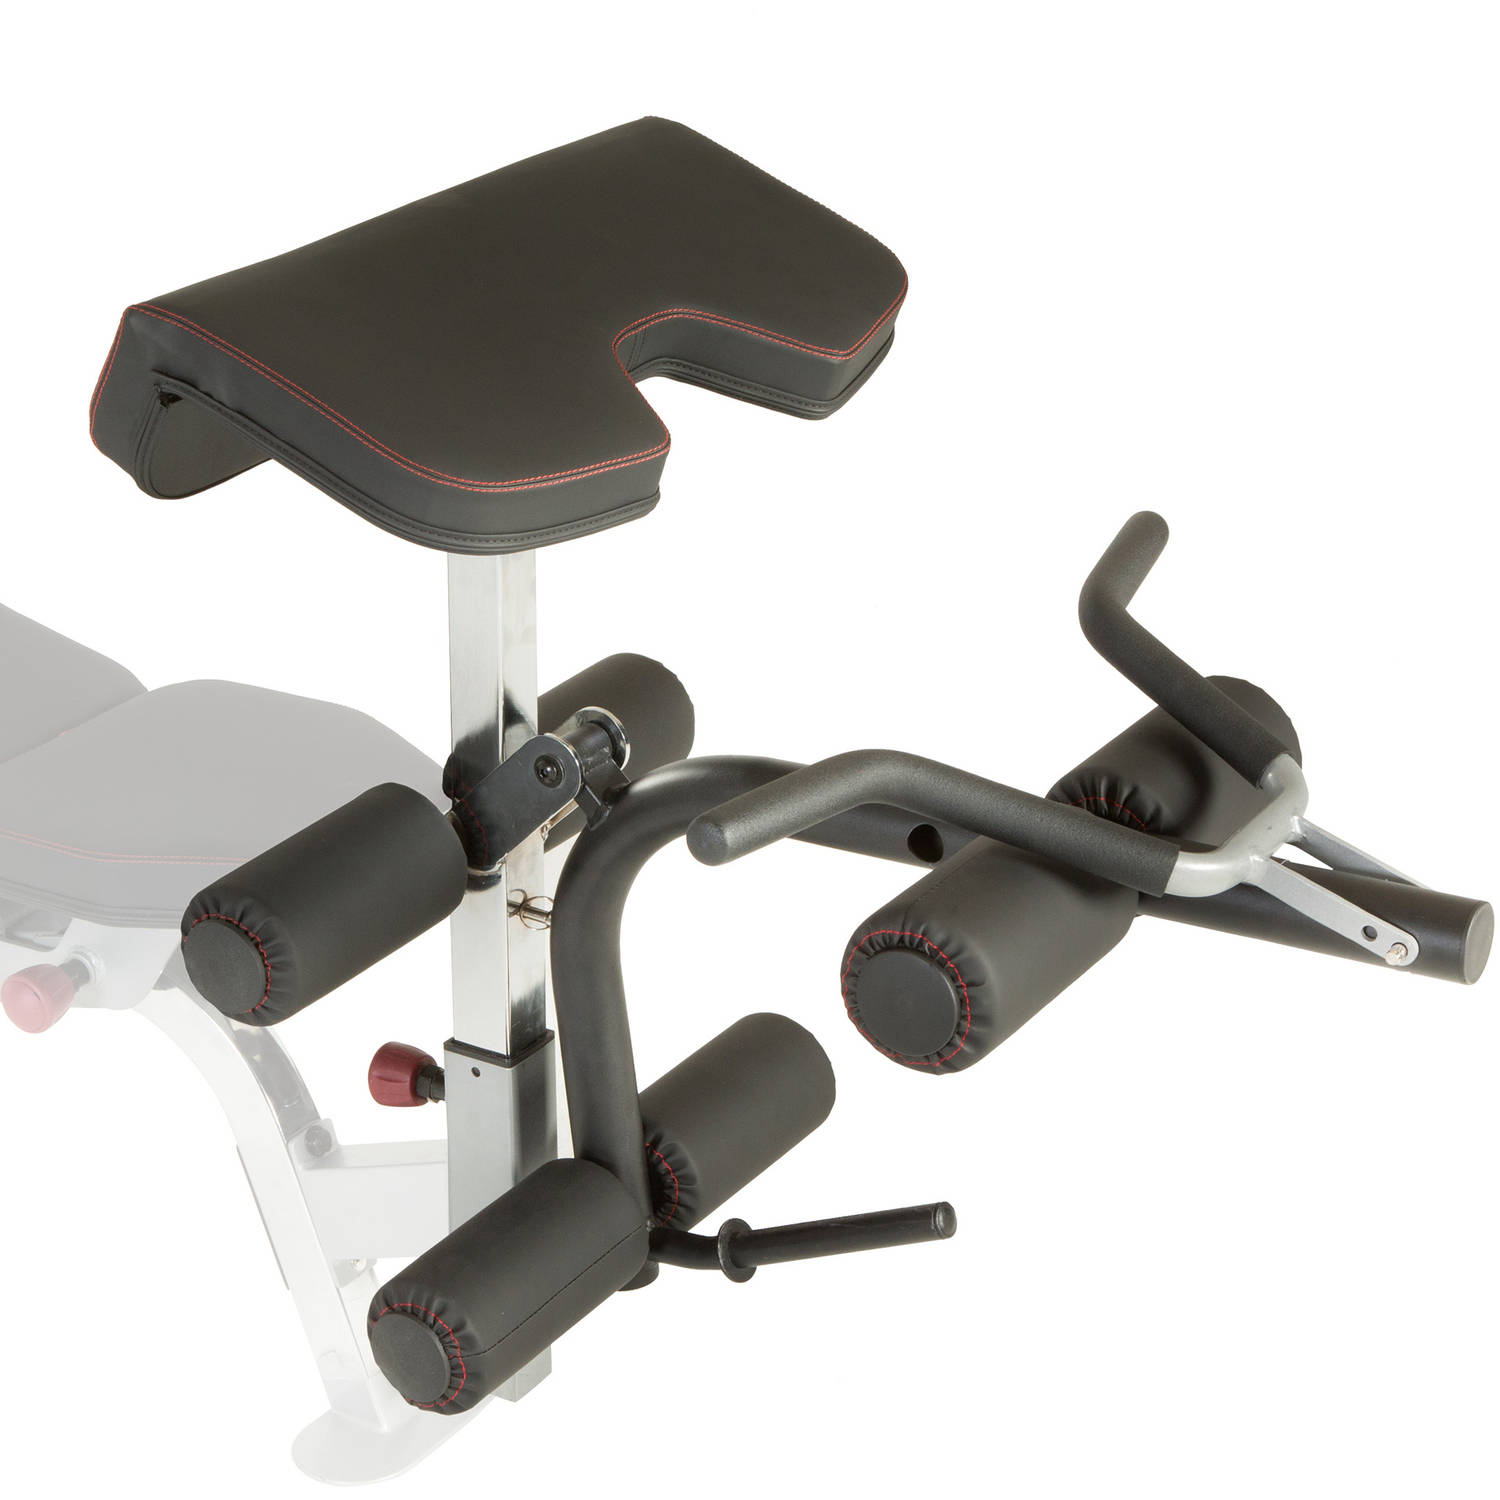 IRONMAN Triathlon X-Class Olympic Preacher Curl and Leg Developer Attachment with Limited Lifetime Warranty